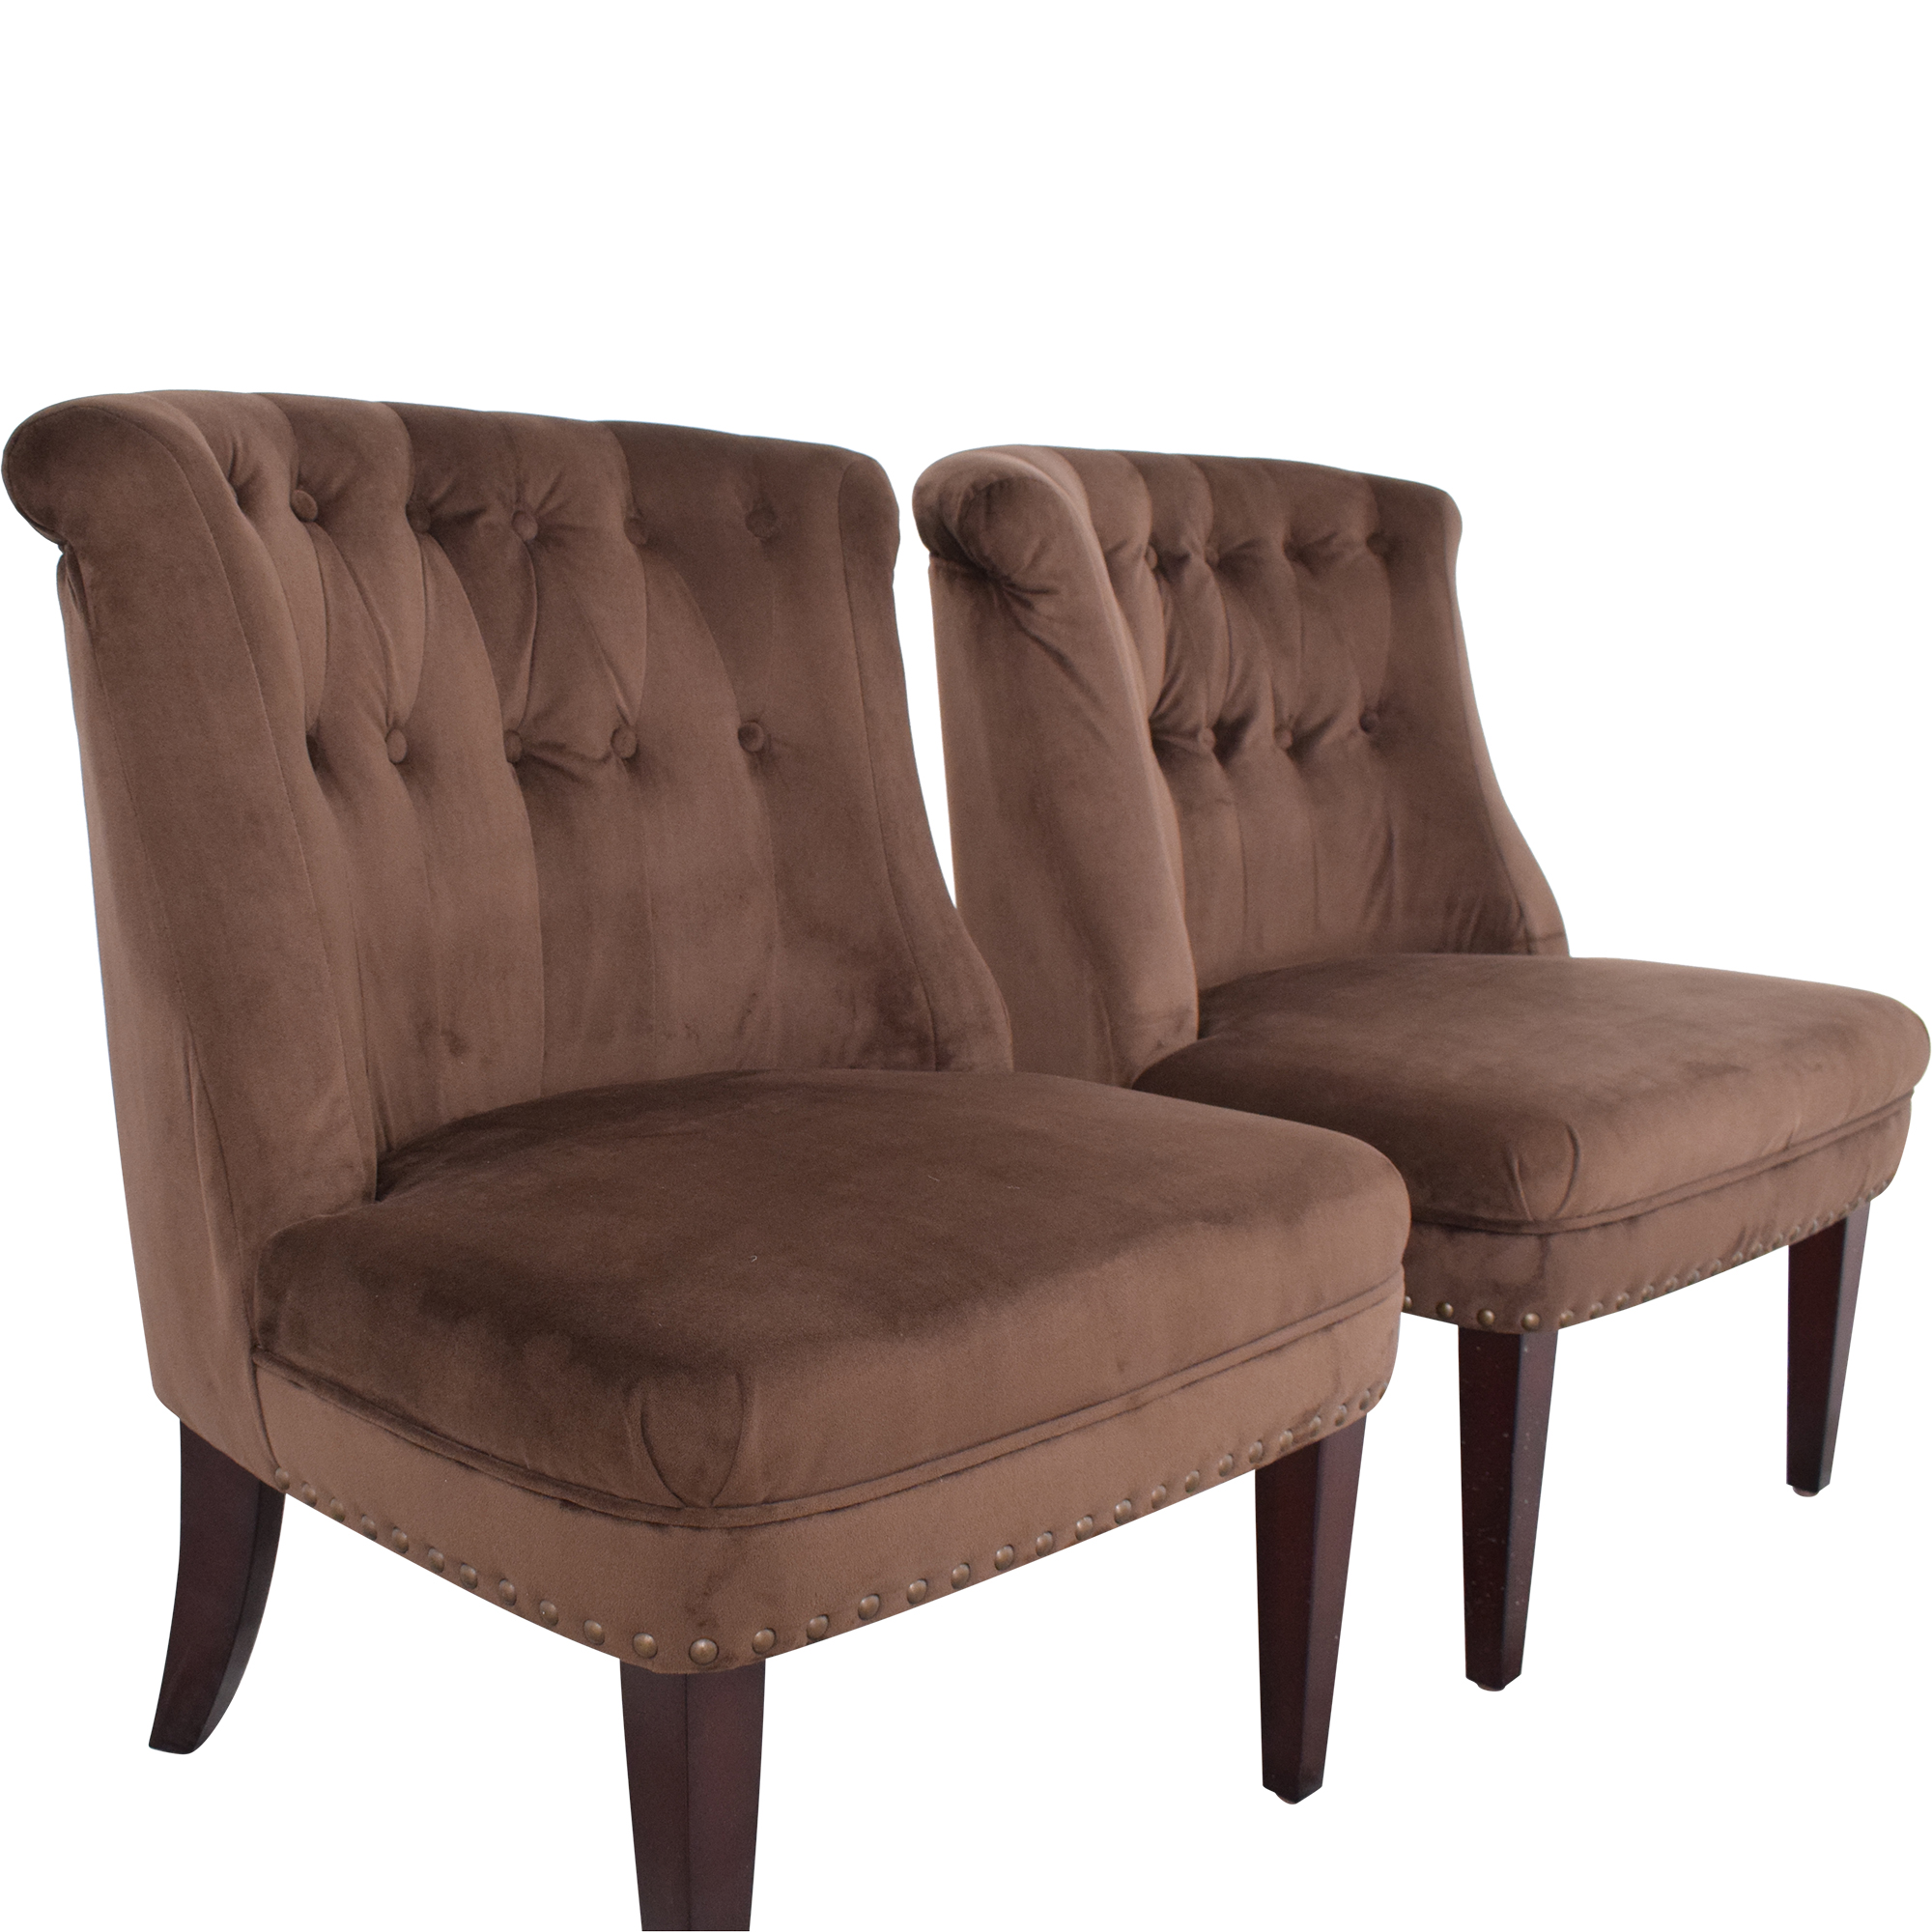 Office Star Office Star Accent Chairs pa